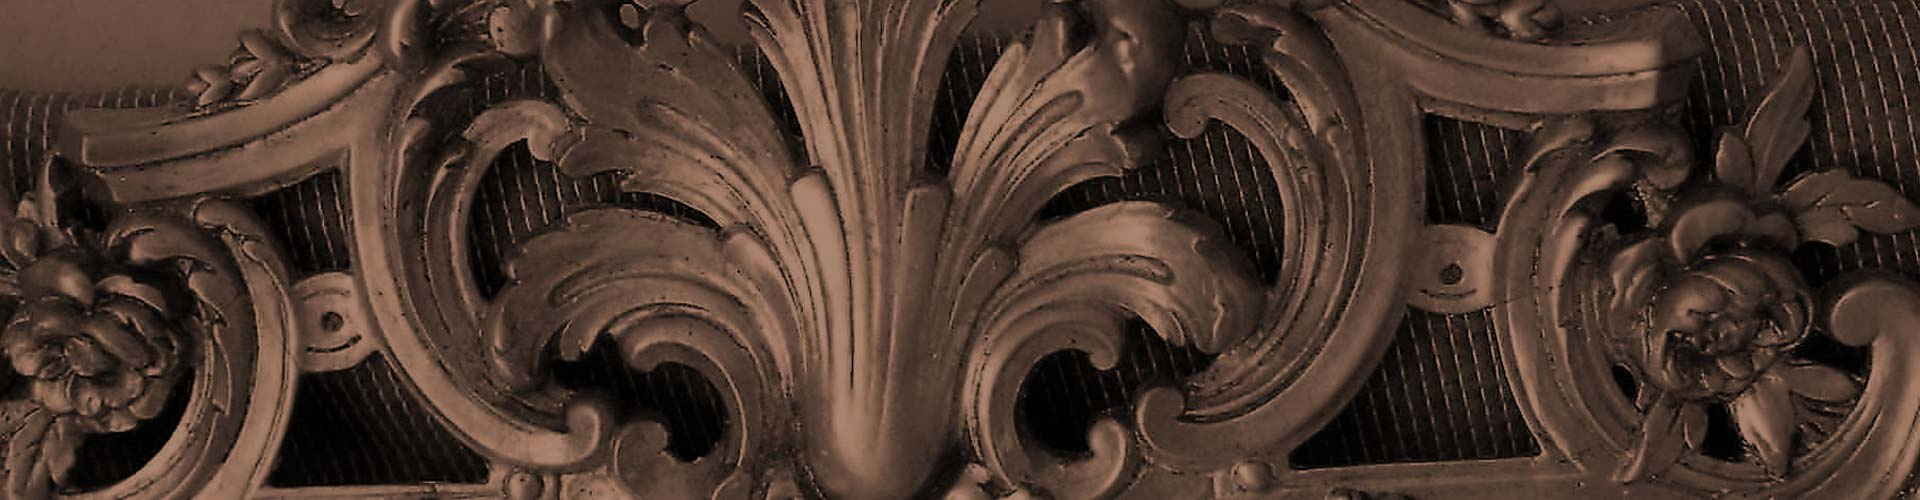 stevens-furniture-london-gilding-section-header-background-image